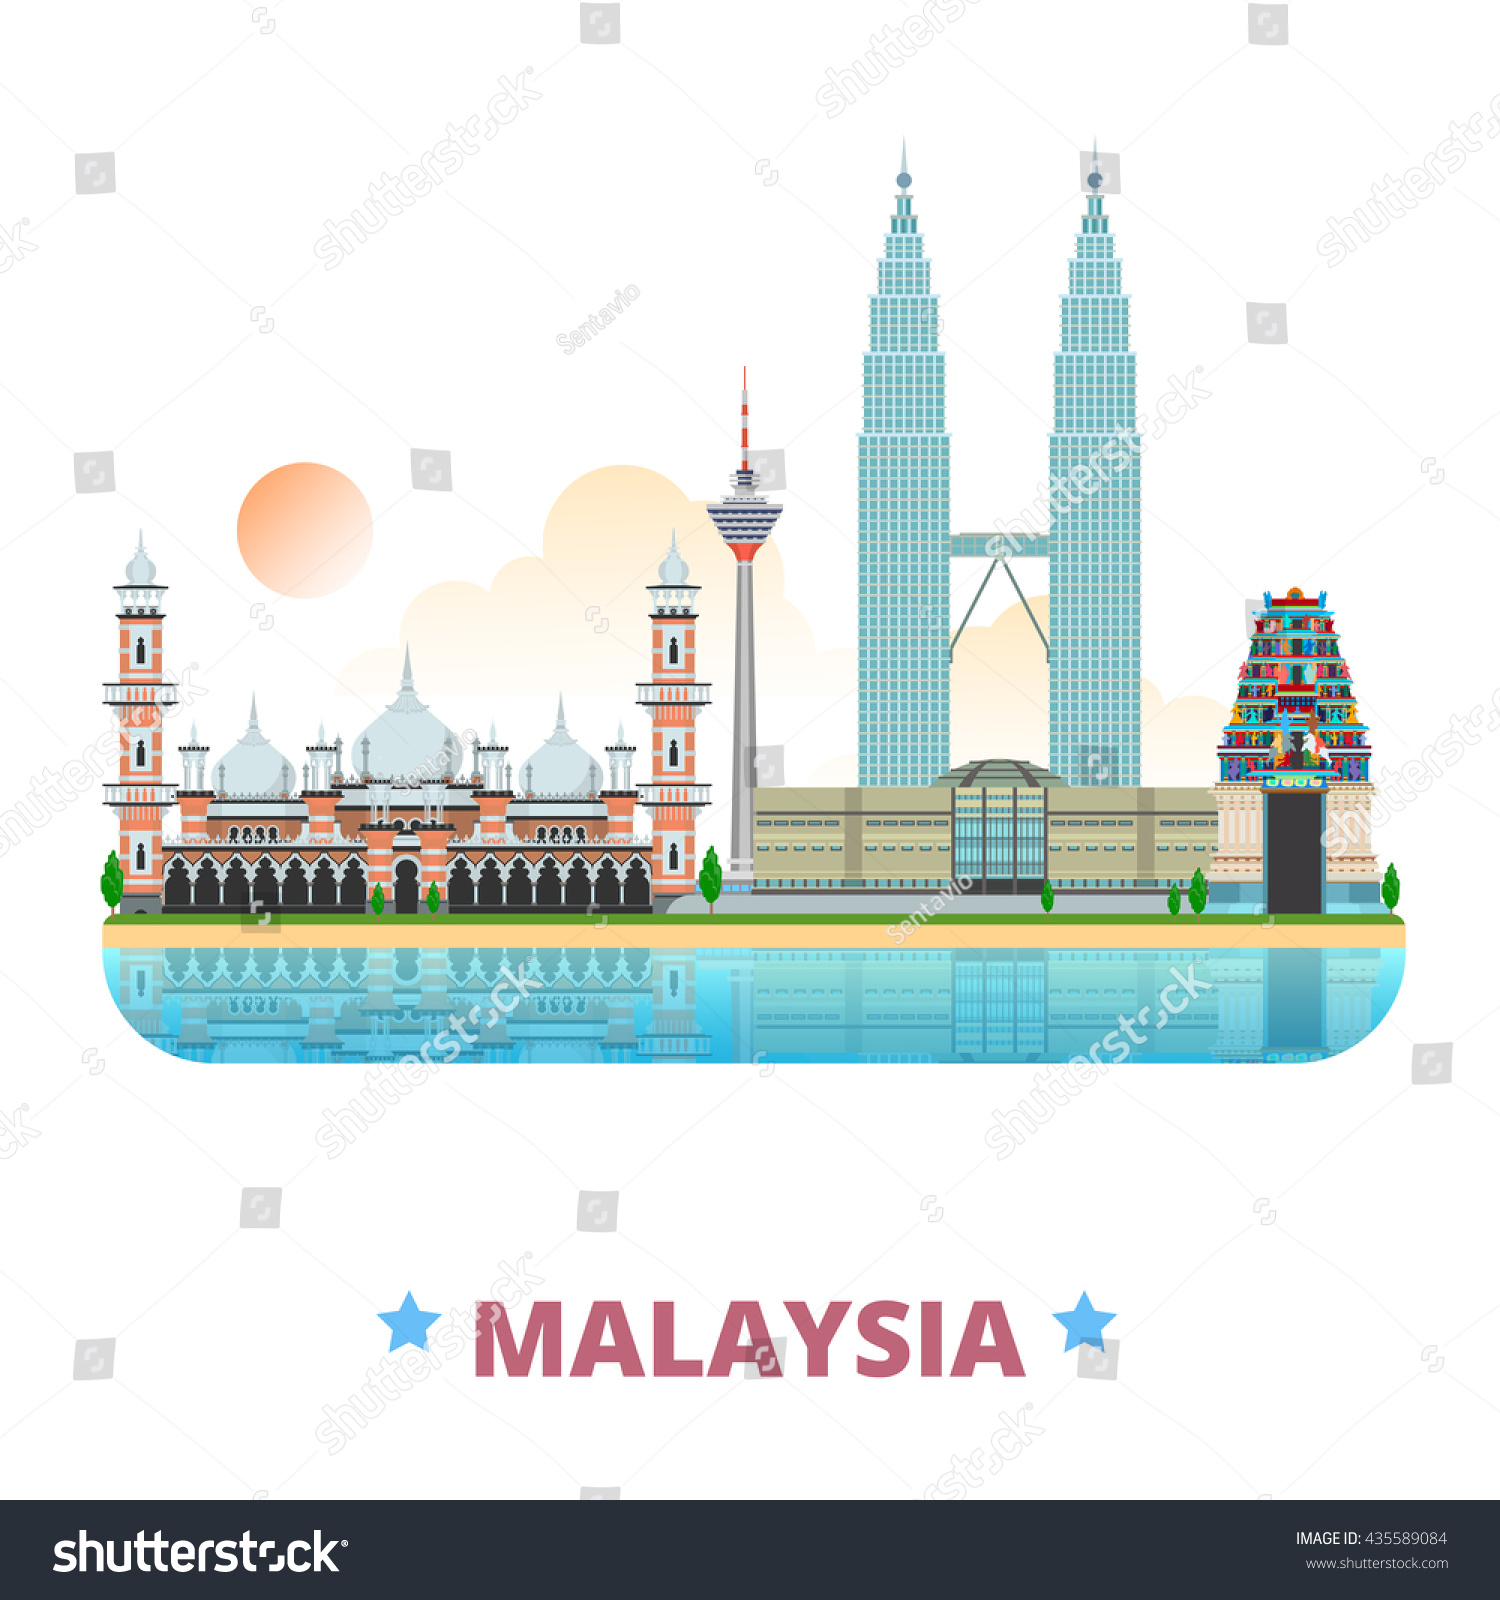 Malaysia Country: Malaysia Country Design Template Flat Cartoon Stock Vector